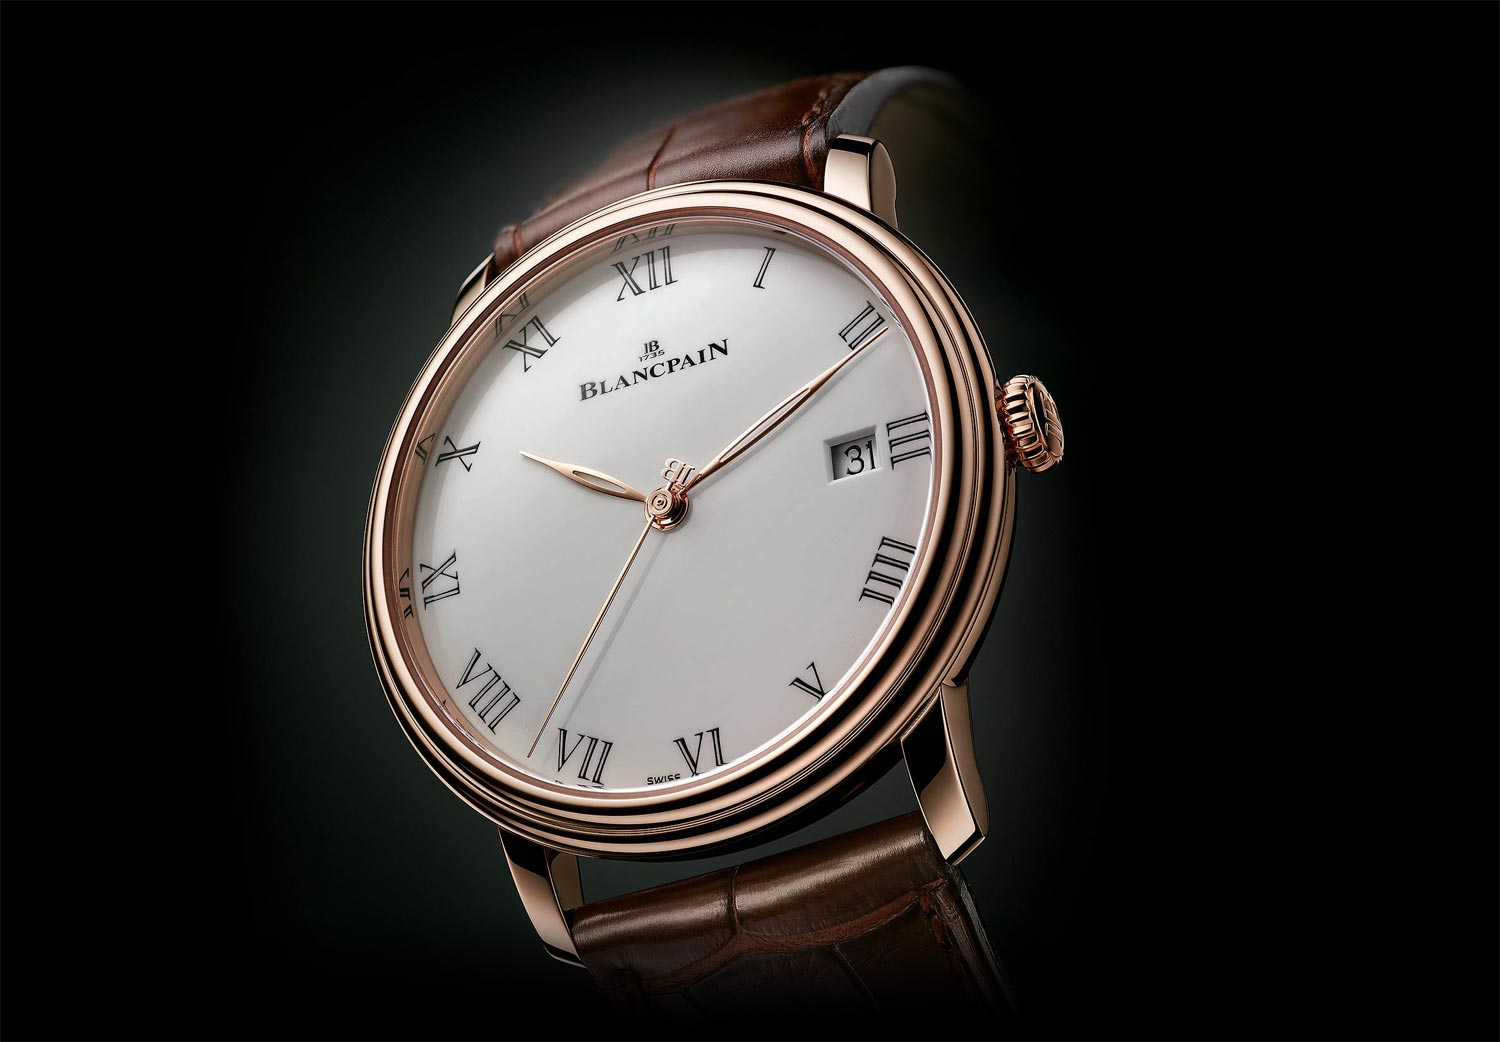 Blancpain classic Villeret styling